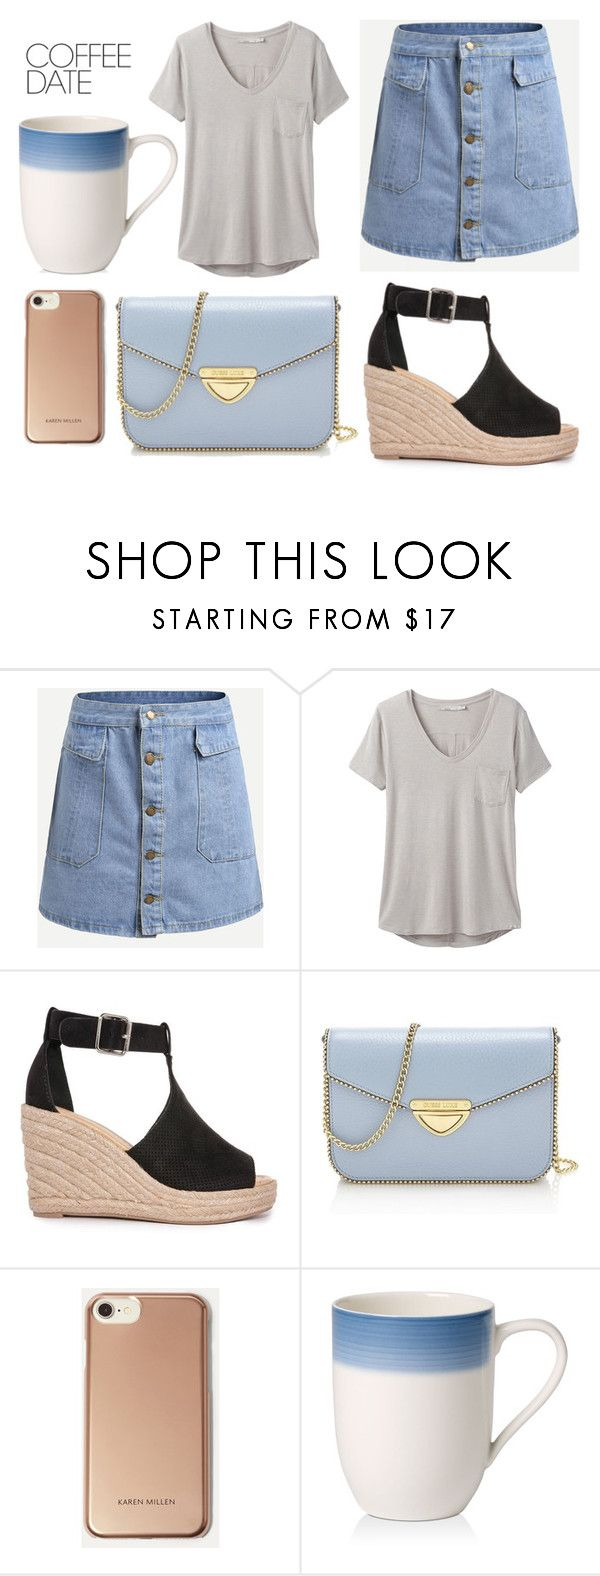 """""""a couple summers later i acquired taste for salmon on a baggel"""" by emilyistheone ❤ liked on Polyvore featuring prAna, Saint Tropez, Karen Millen, Villeroy & Boch and CoffeeDate"""